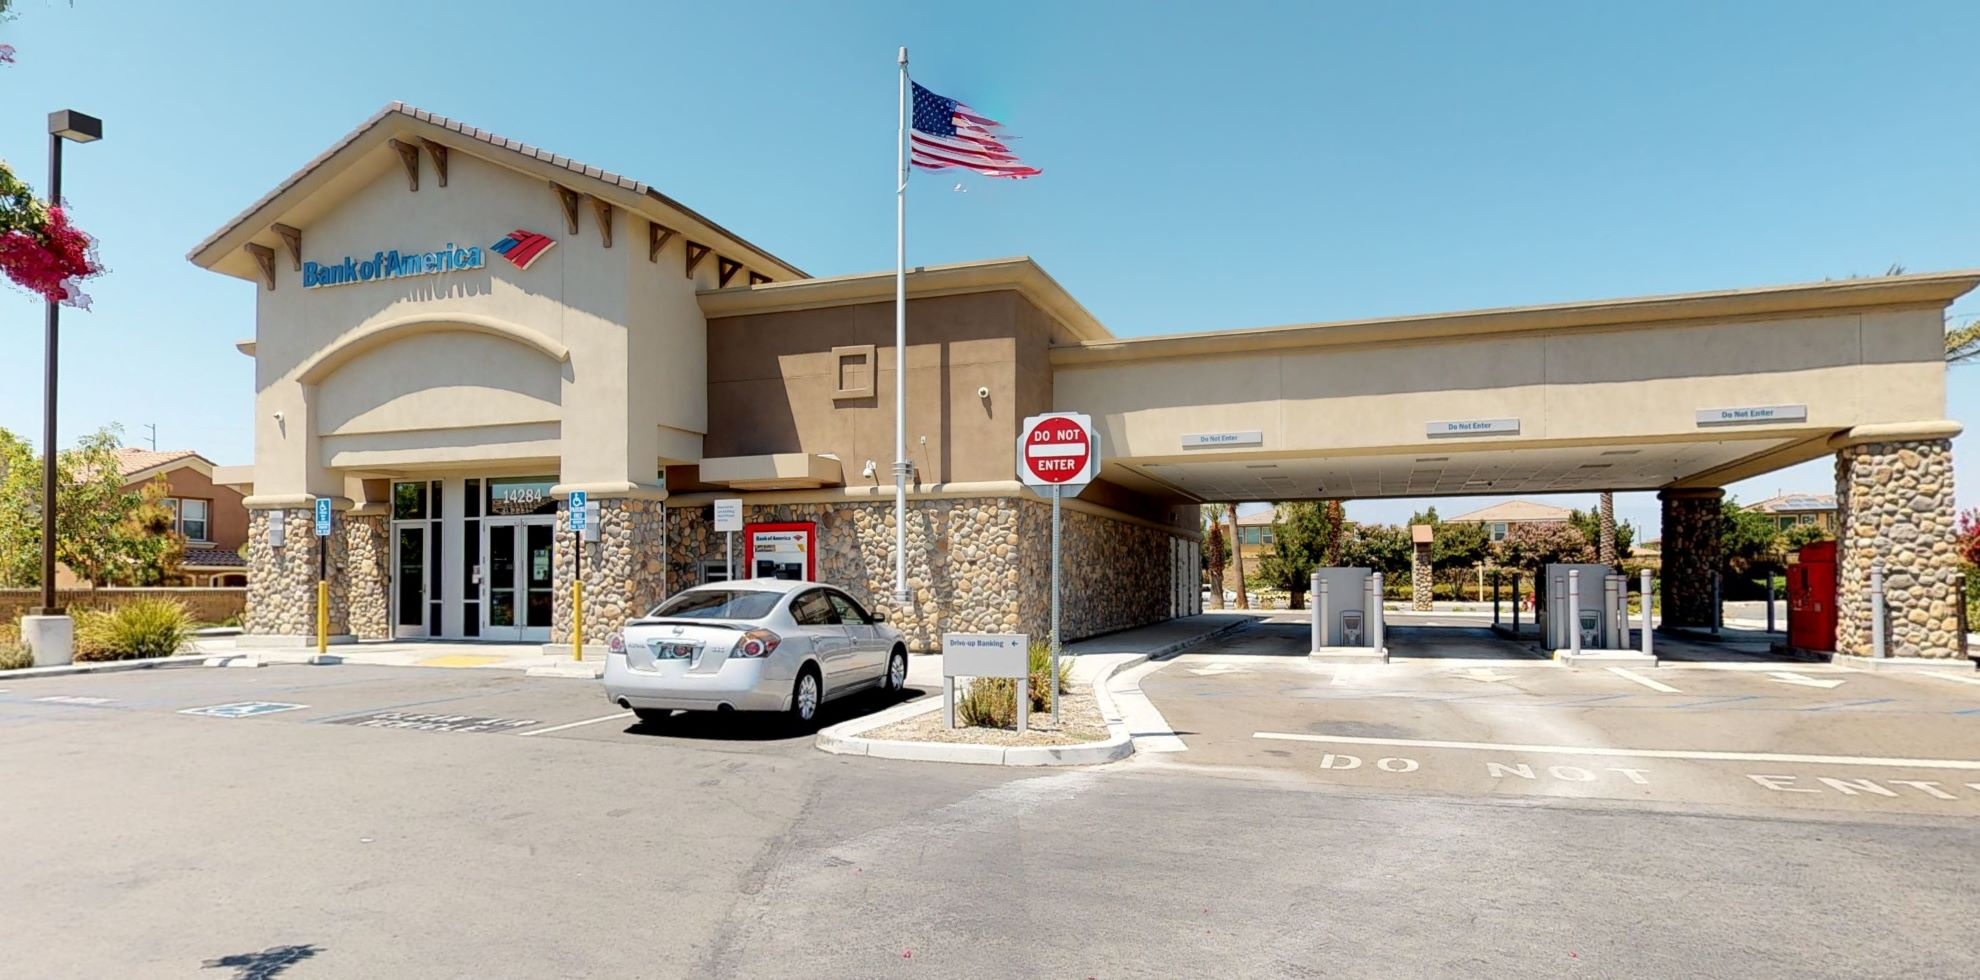 Bank of America financial center with drive-thru ATM | 14284 Schleisman Rd, Eastvale, CA 92880